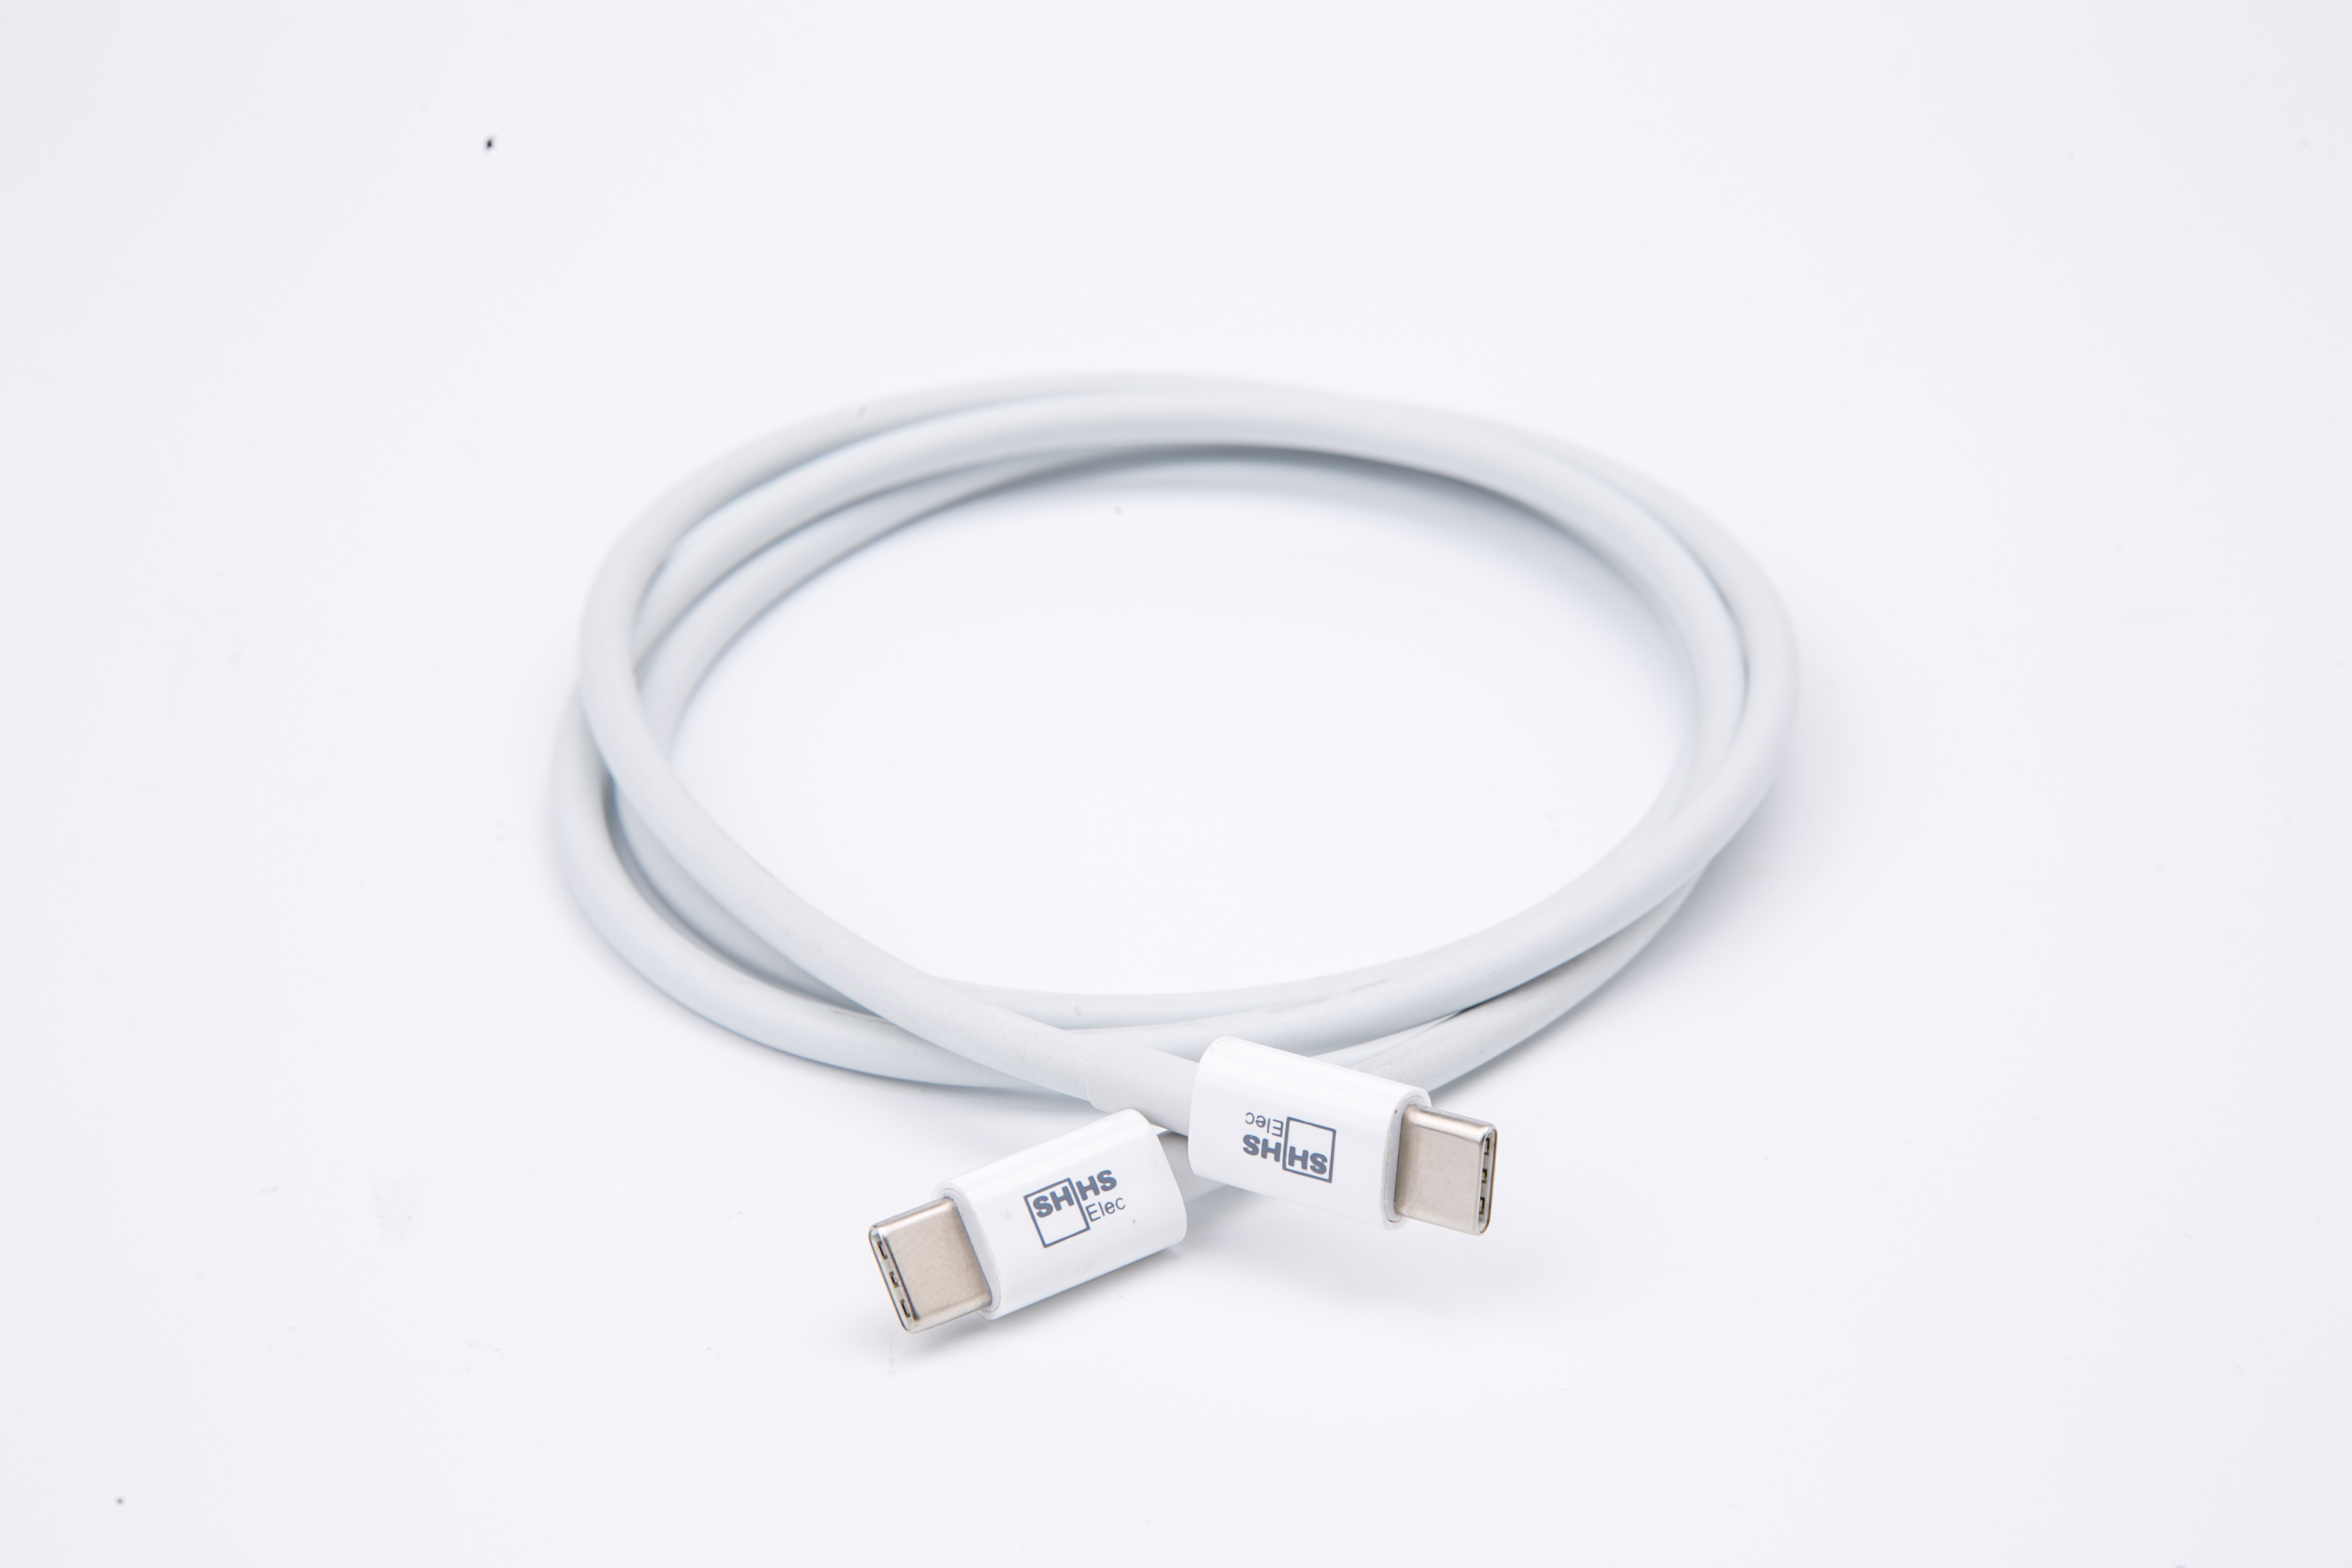 Type c to type c cable